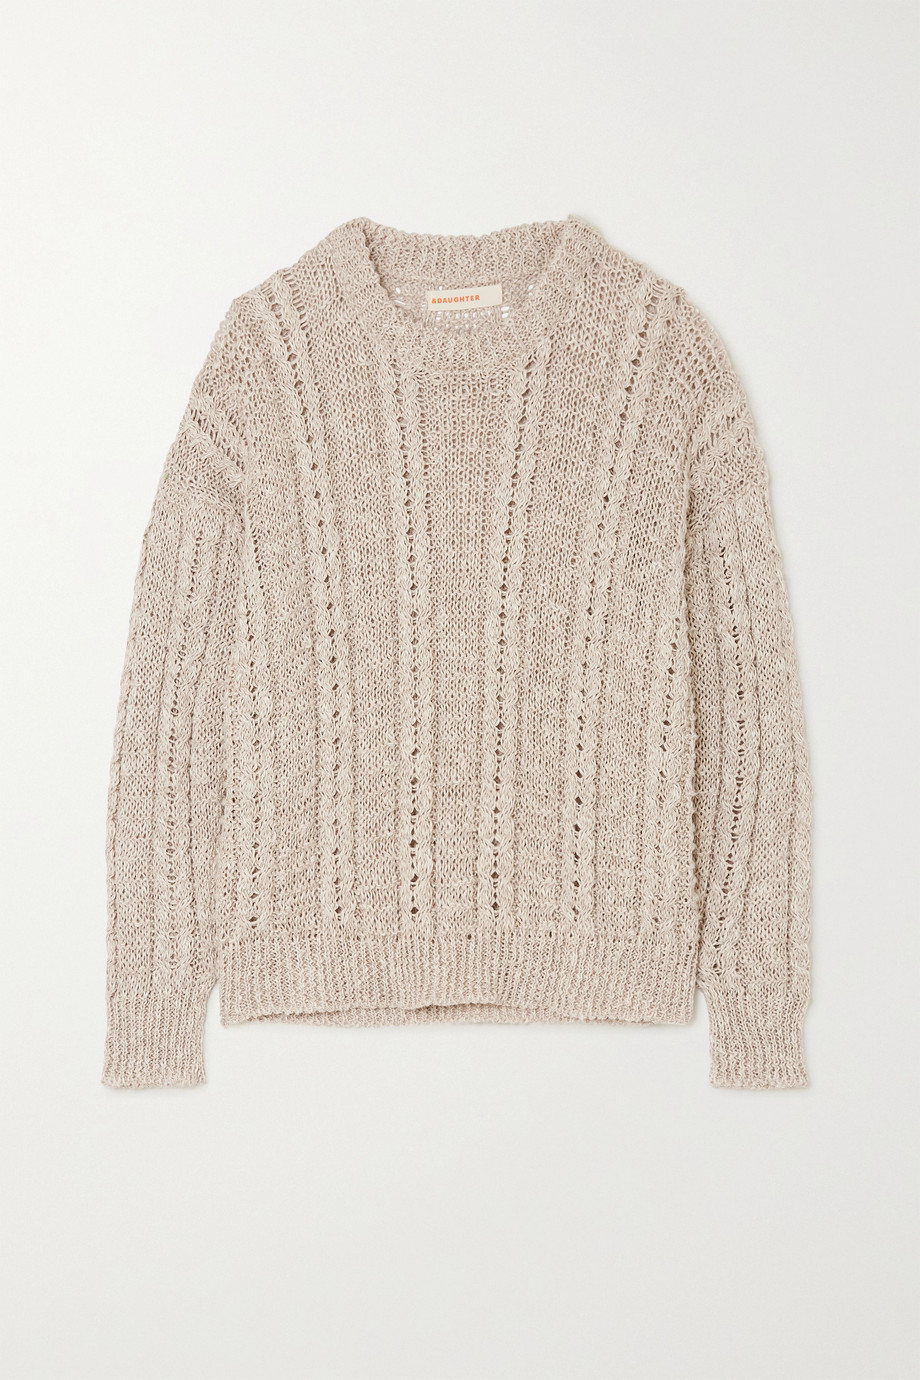 &Daughter Stevie cable-knit linen and cotton-blend sweater